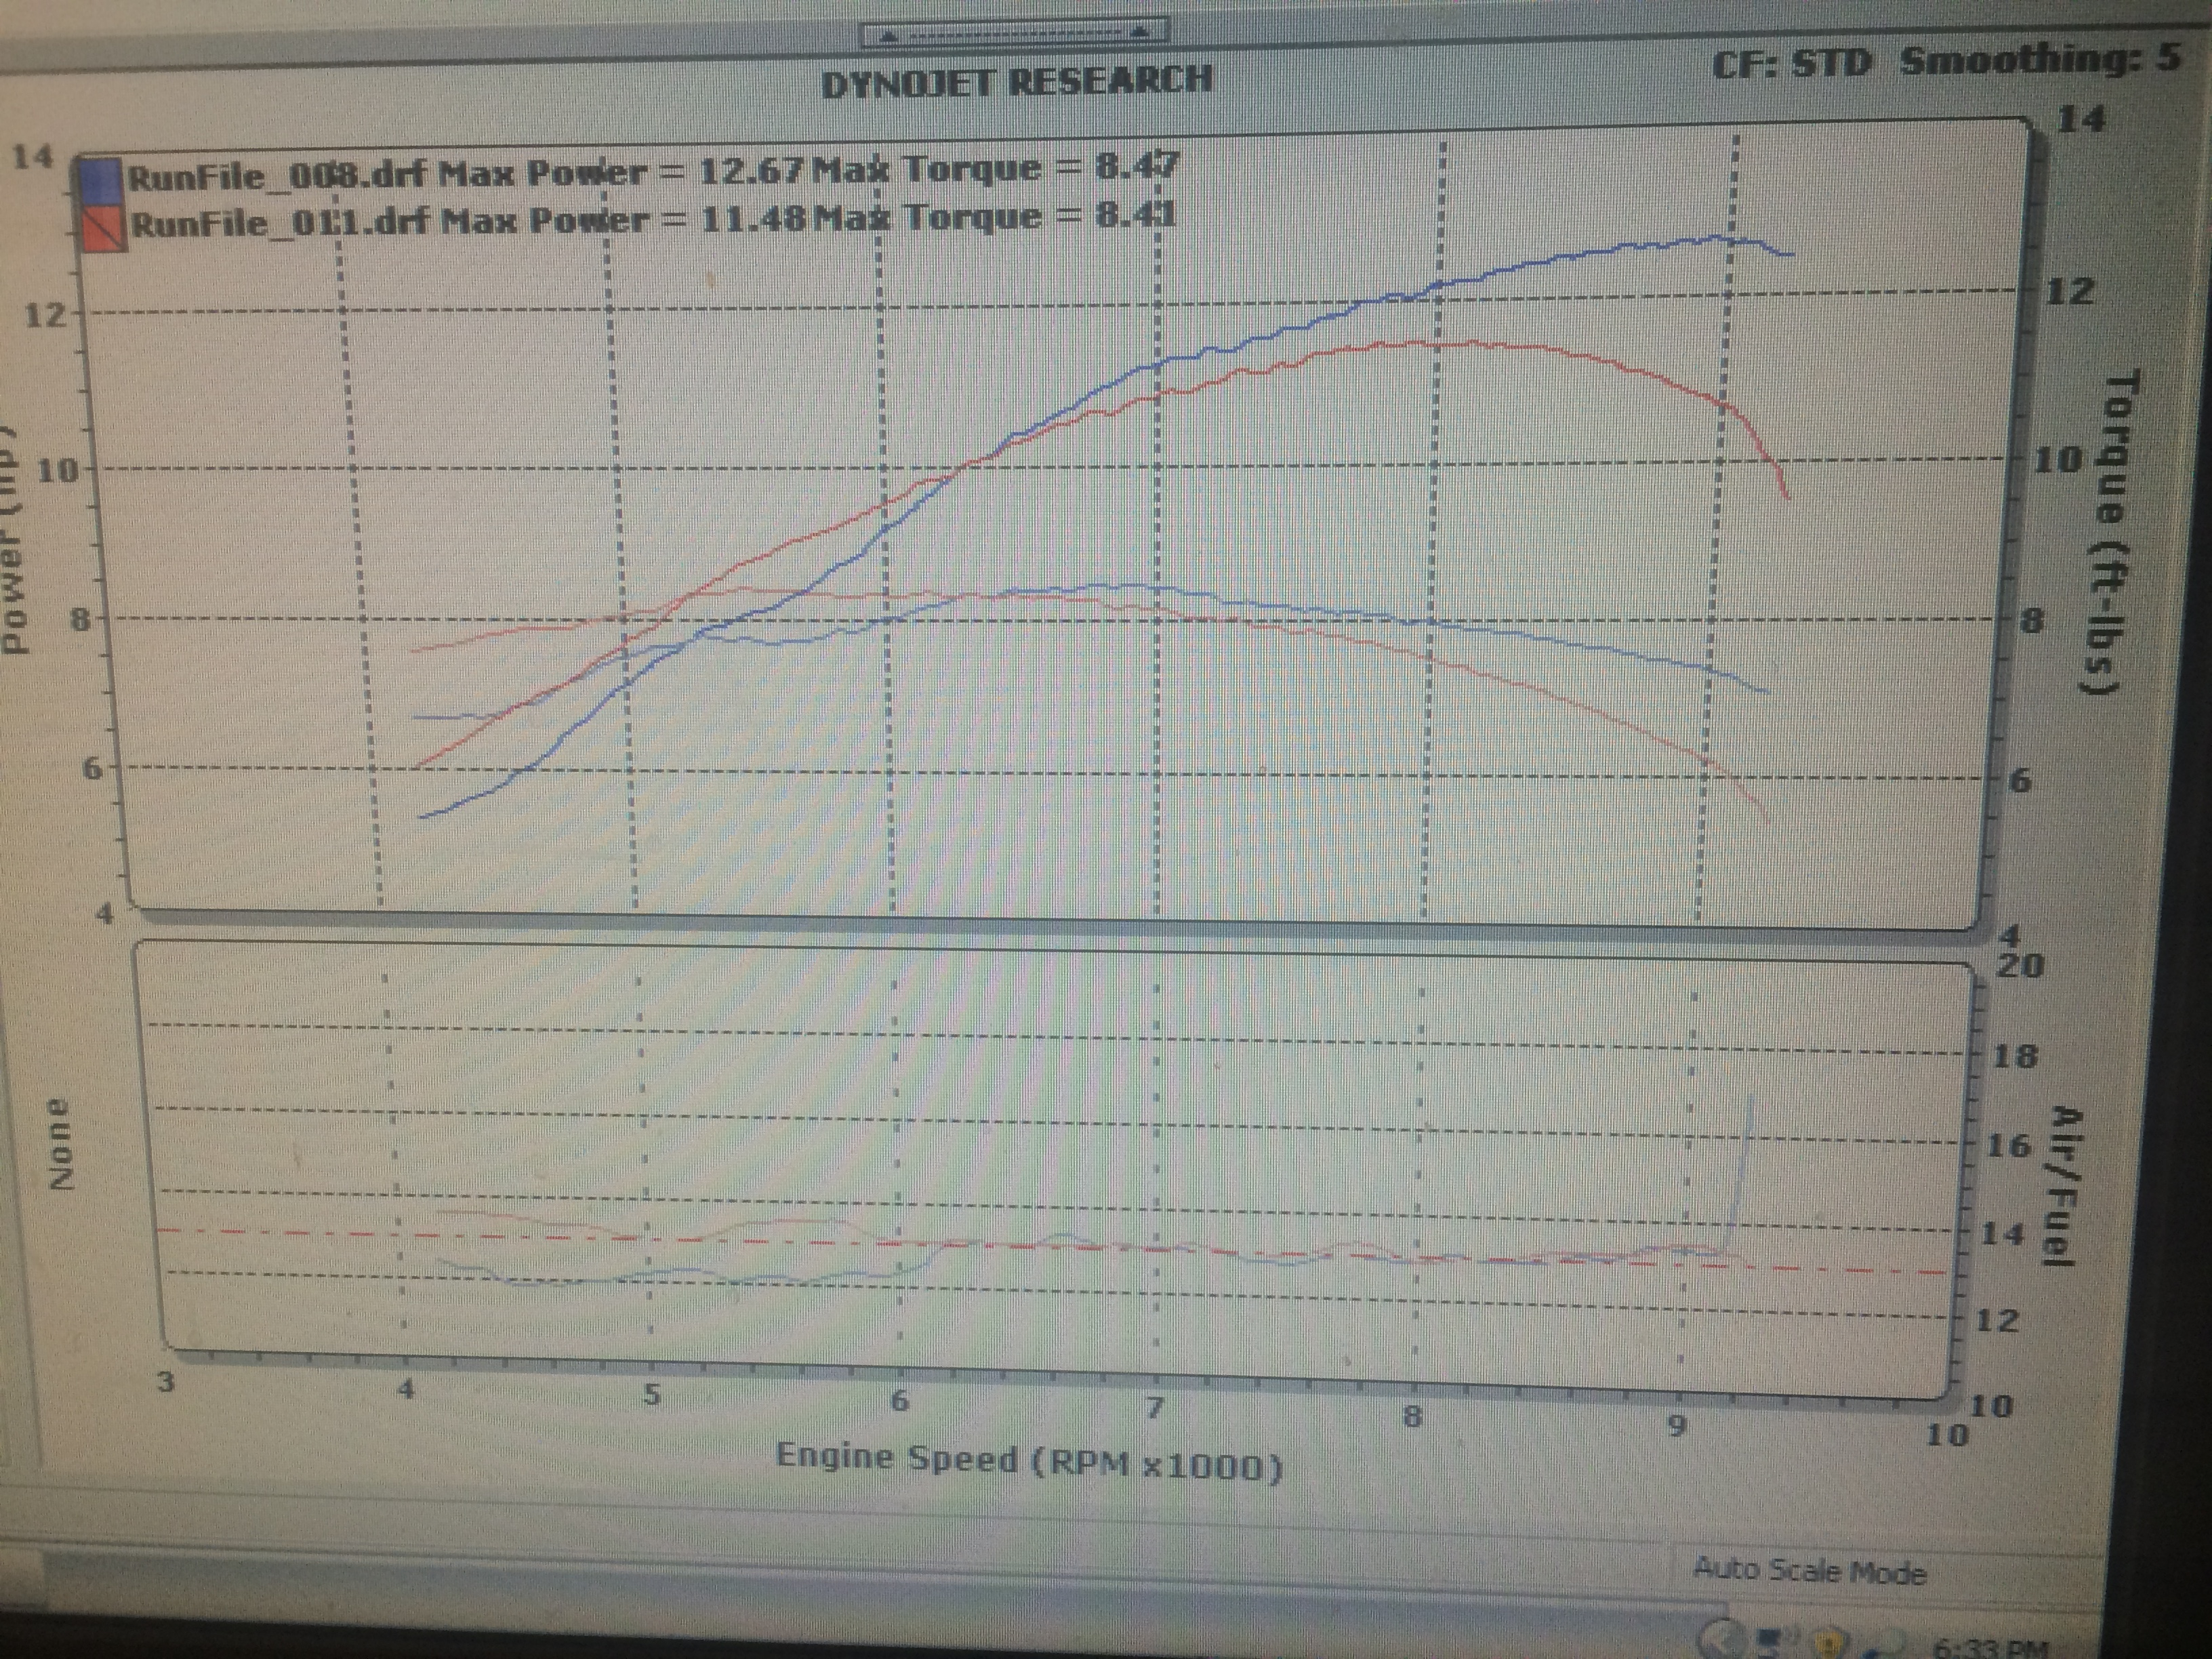 Koso Camsaft Dyno Run